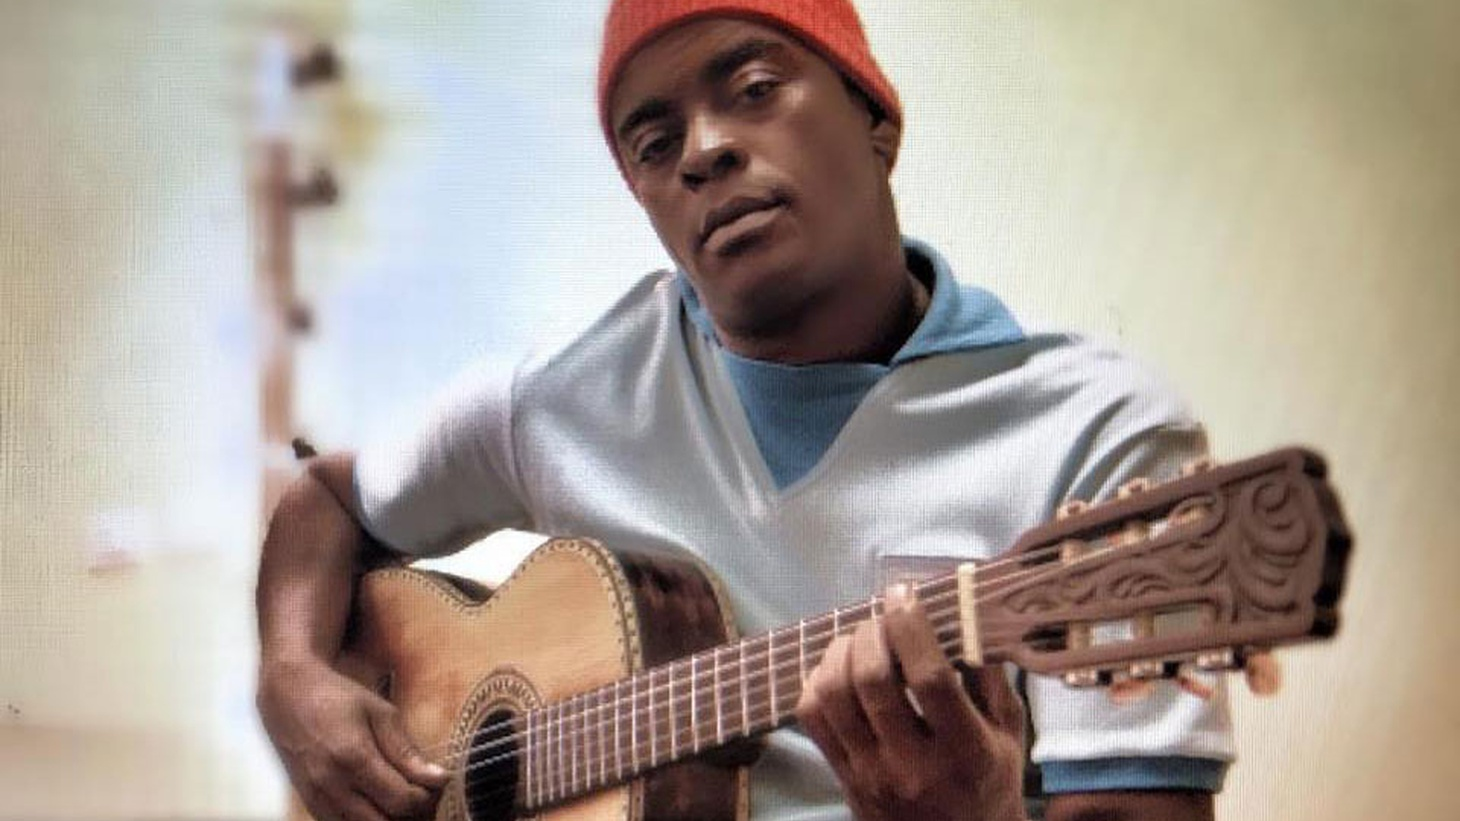 Brazilian singer Seu Jorge is doing a run of sold out shows in LA showcasing his unique take on the songs of David Bowie. (10am)